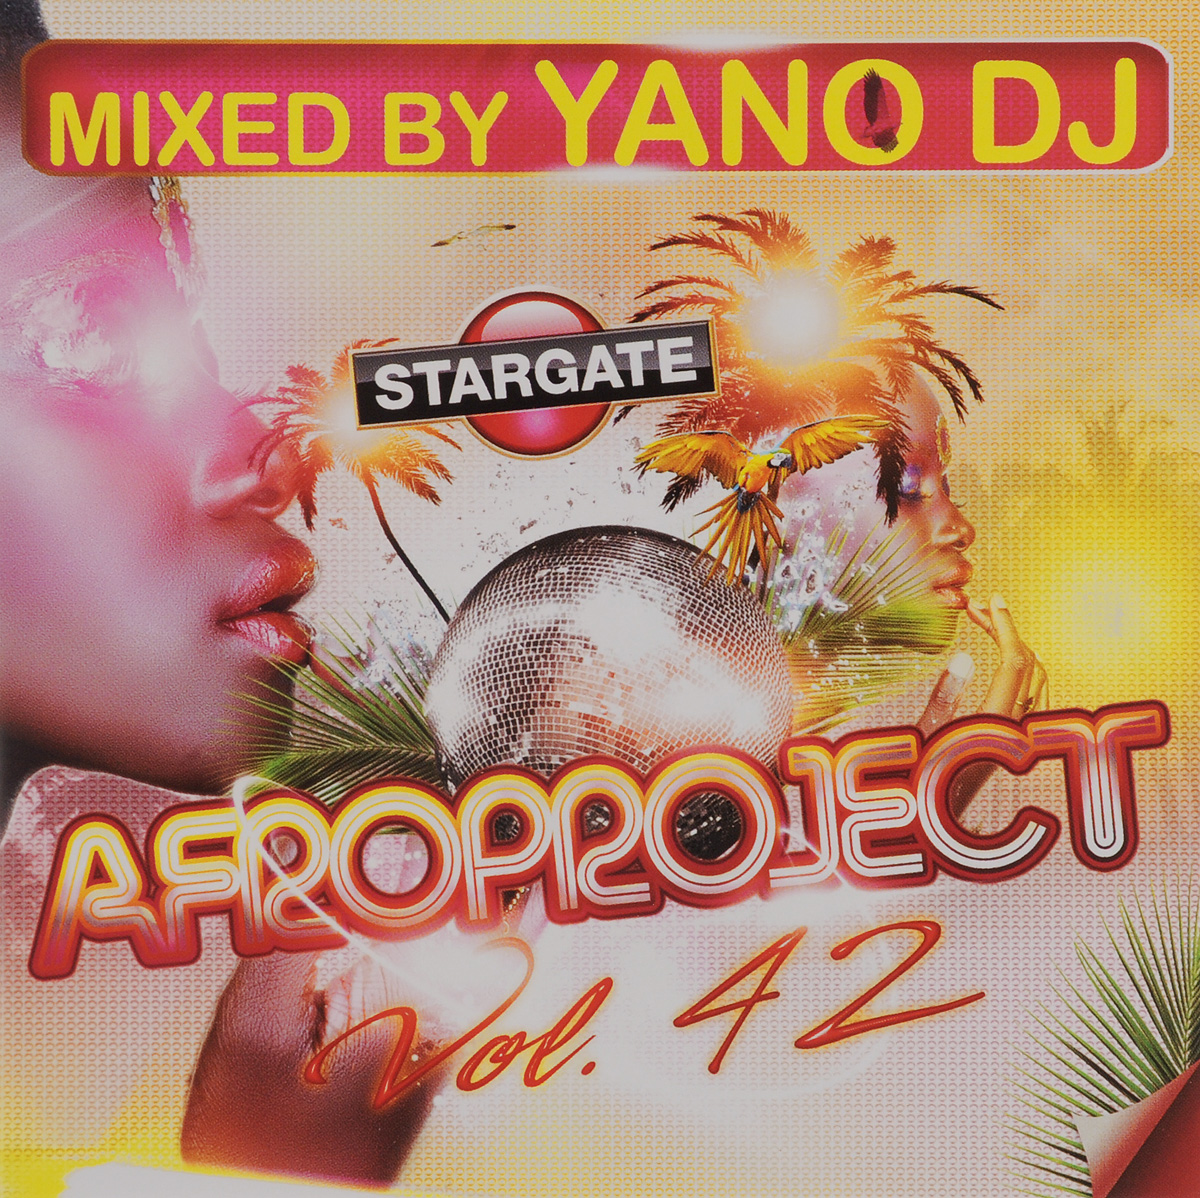 Dj Yano Dj Yano. Afro Project. Vol. 42 dj yano dj yano afro project vol 24 special limited edition cd dvd